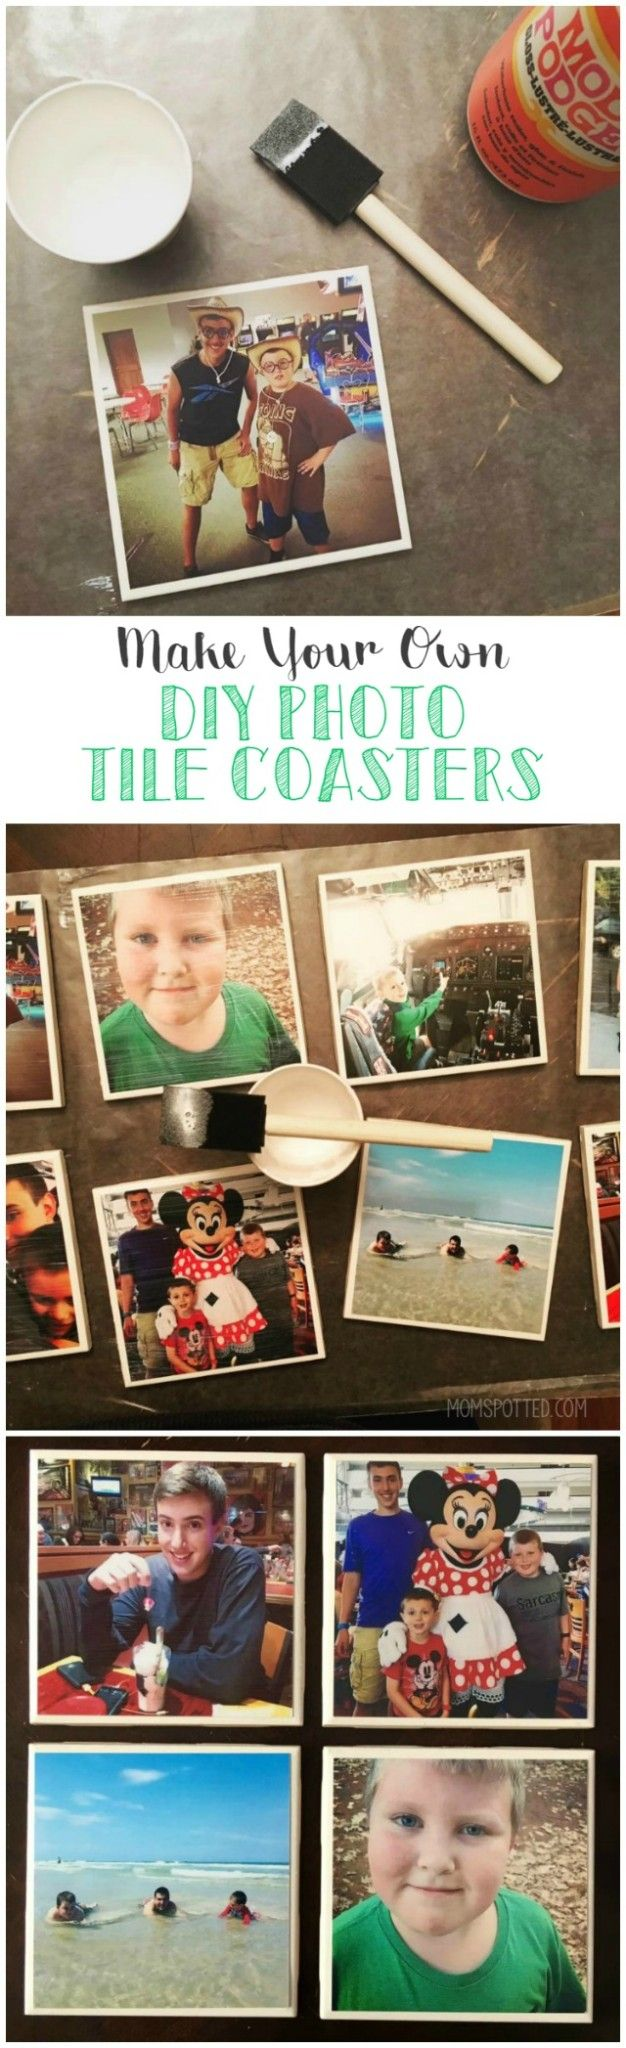 These photo tile coasters make for an easy craft and a great homemade gift for friends & family. We love using all our favorite Instagram photos!